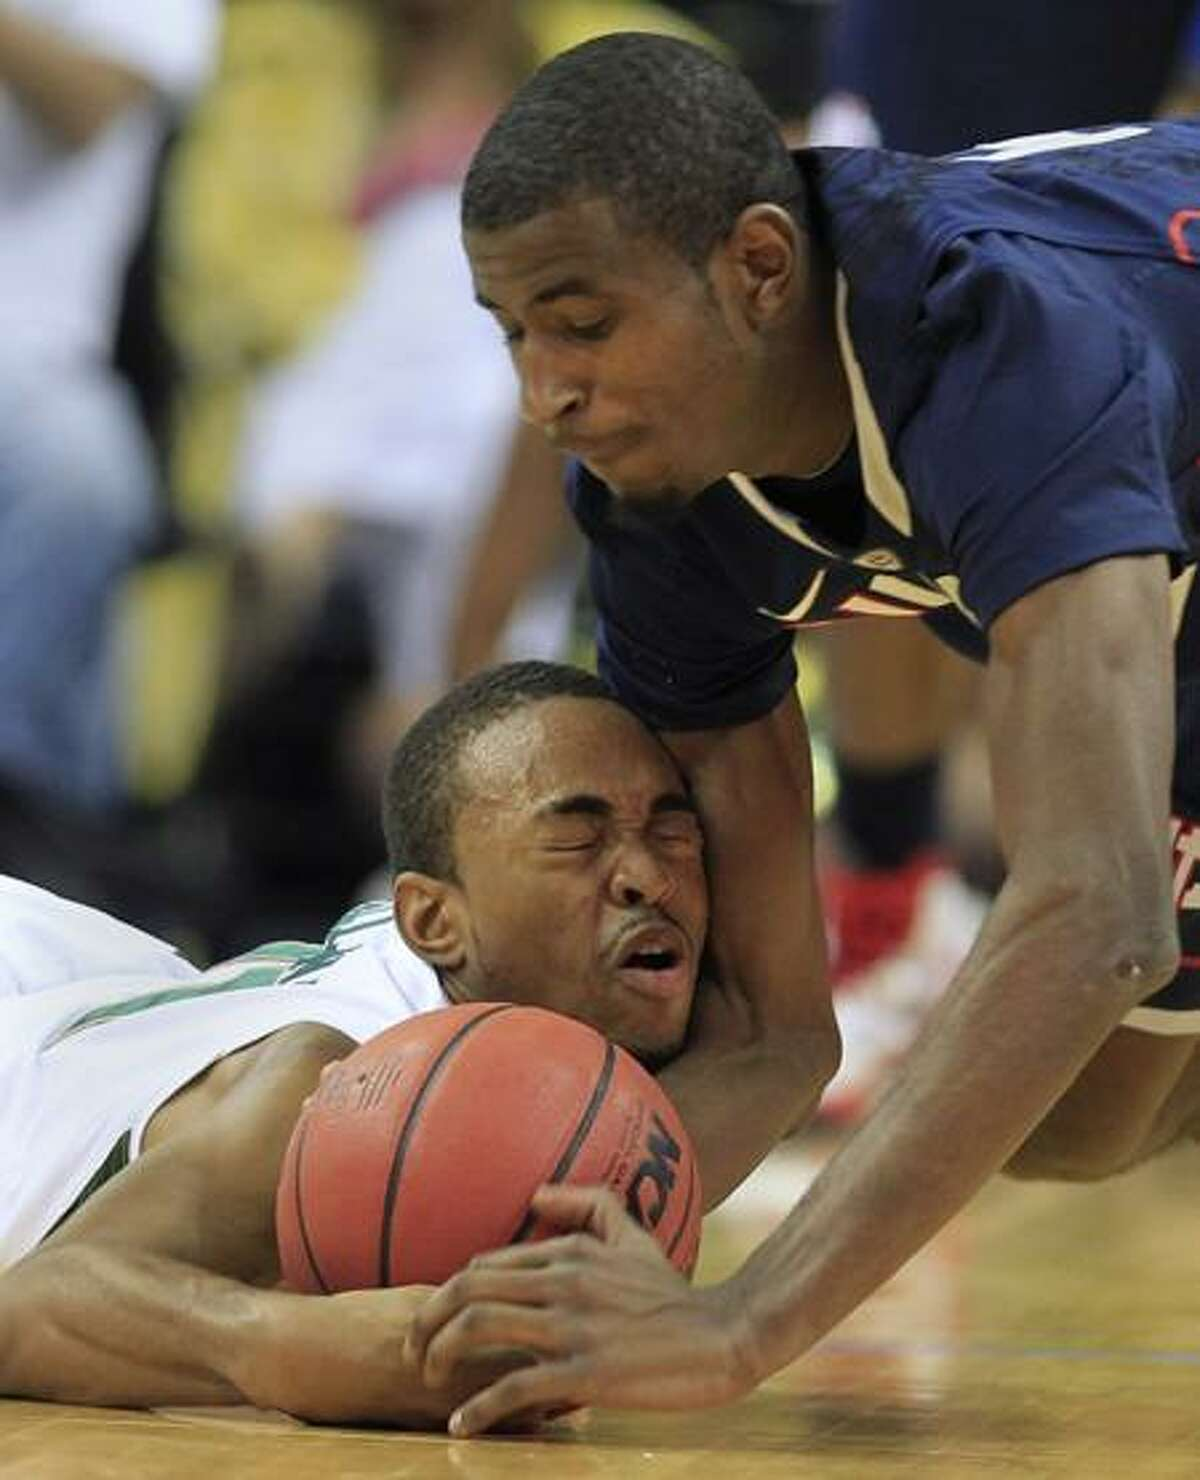 South Florida guard Anthony Collins, left, reacts as he runs into Connecticut forward DeAndre Daniels chasing a loose ball during the first half of an NCAA college basketball game Wednesday Dec. 28, 2011, in Tampa, Fla. (AP Photo/Chris O'Meara)